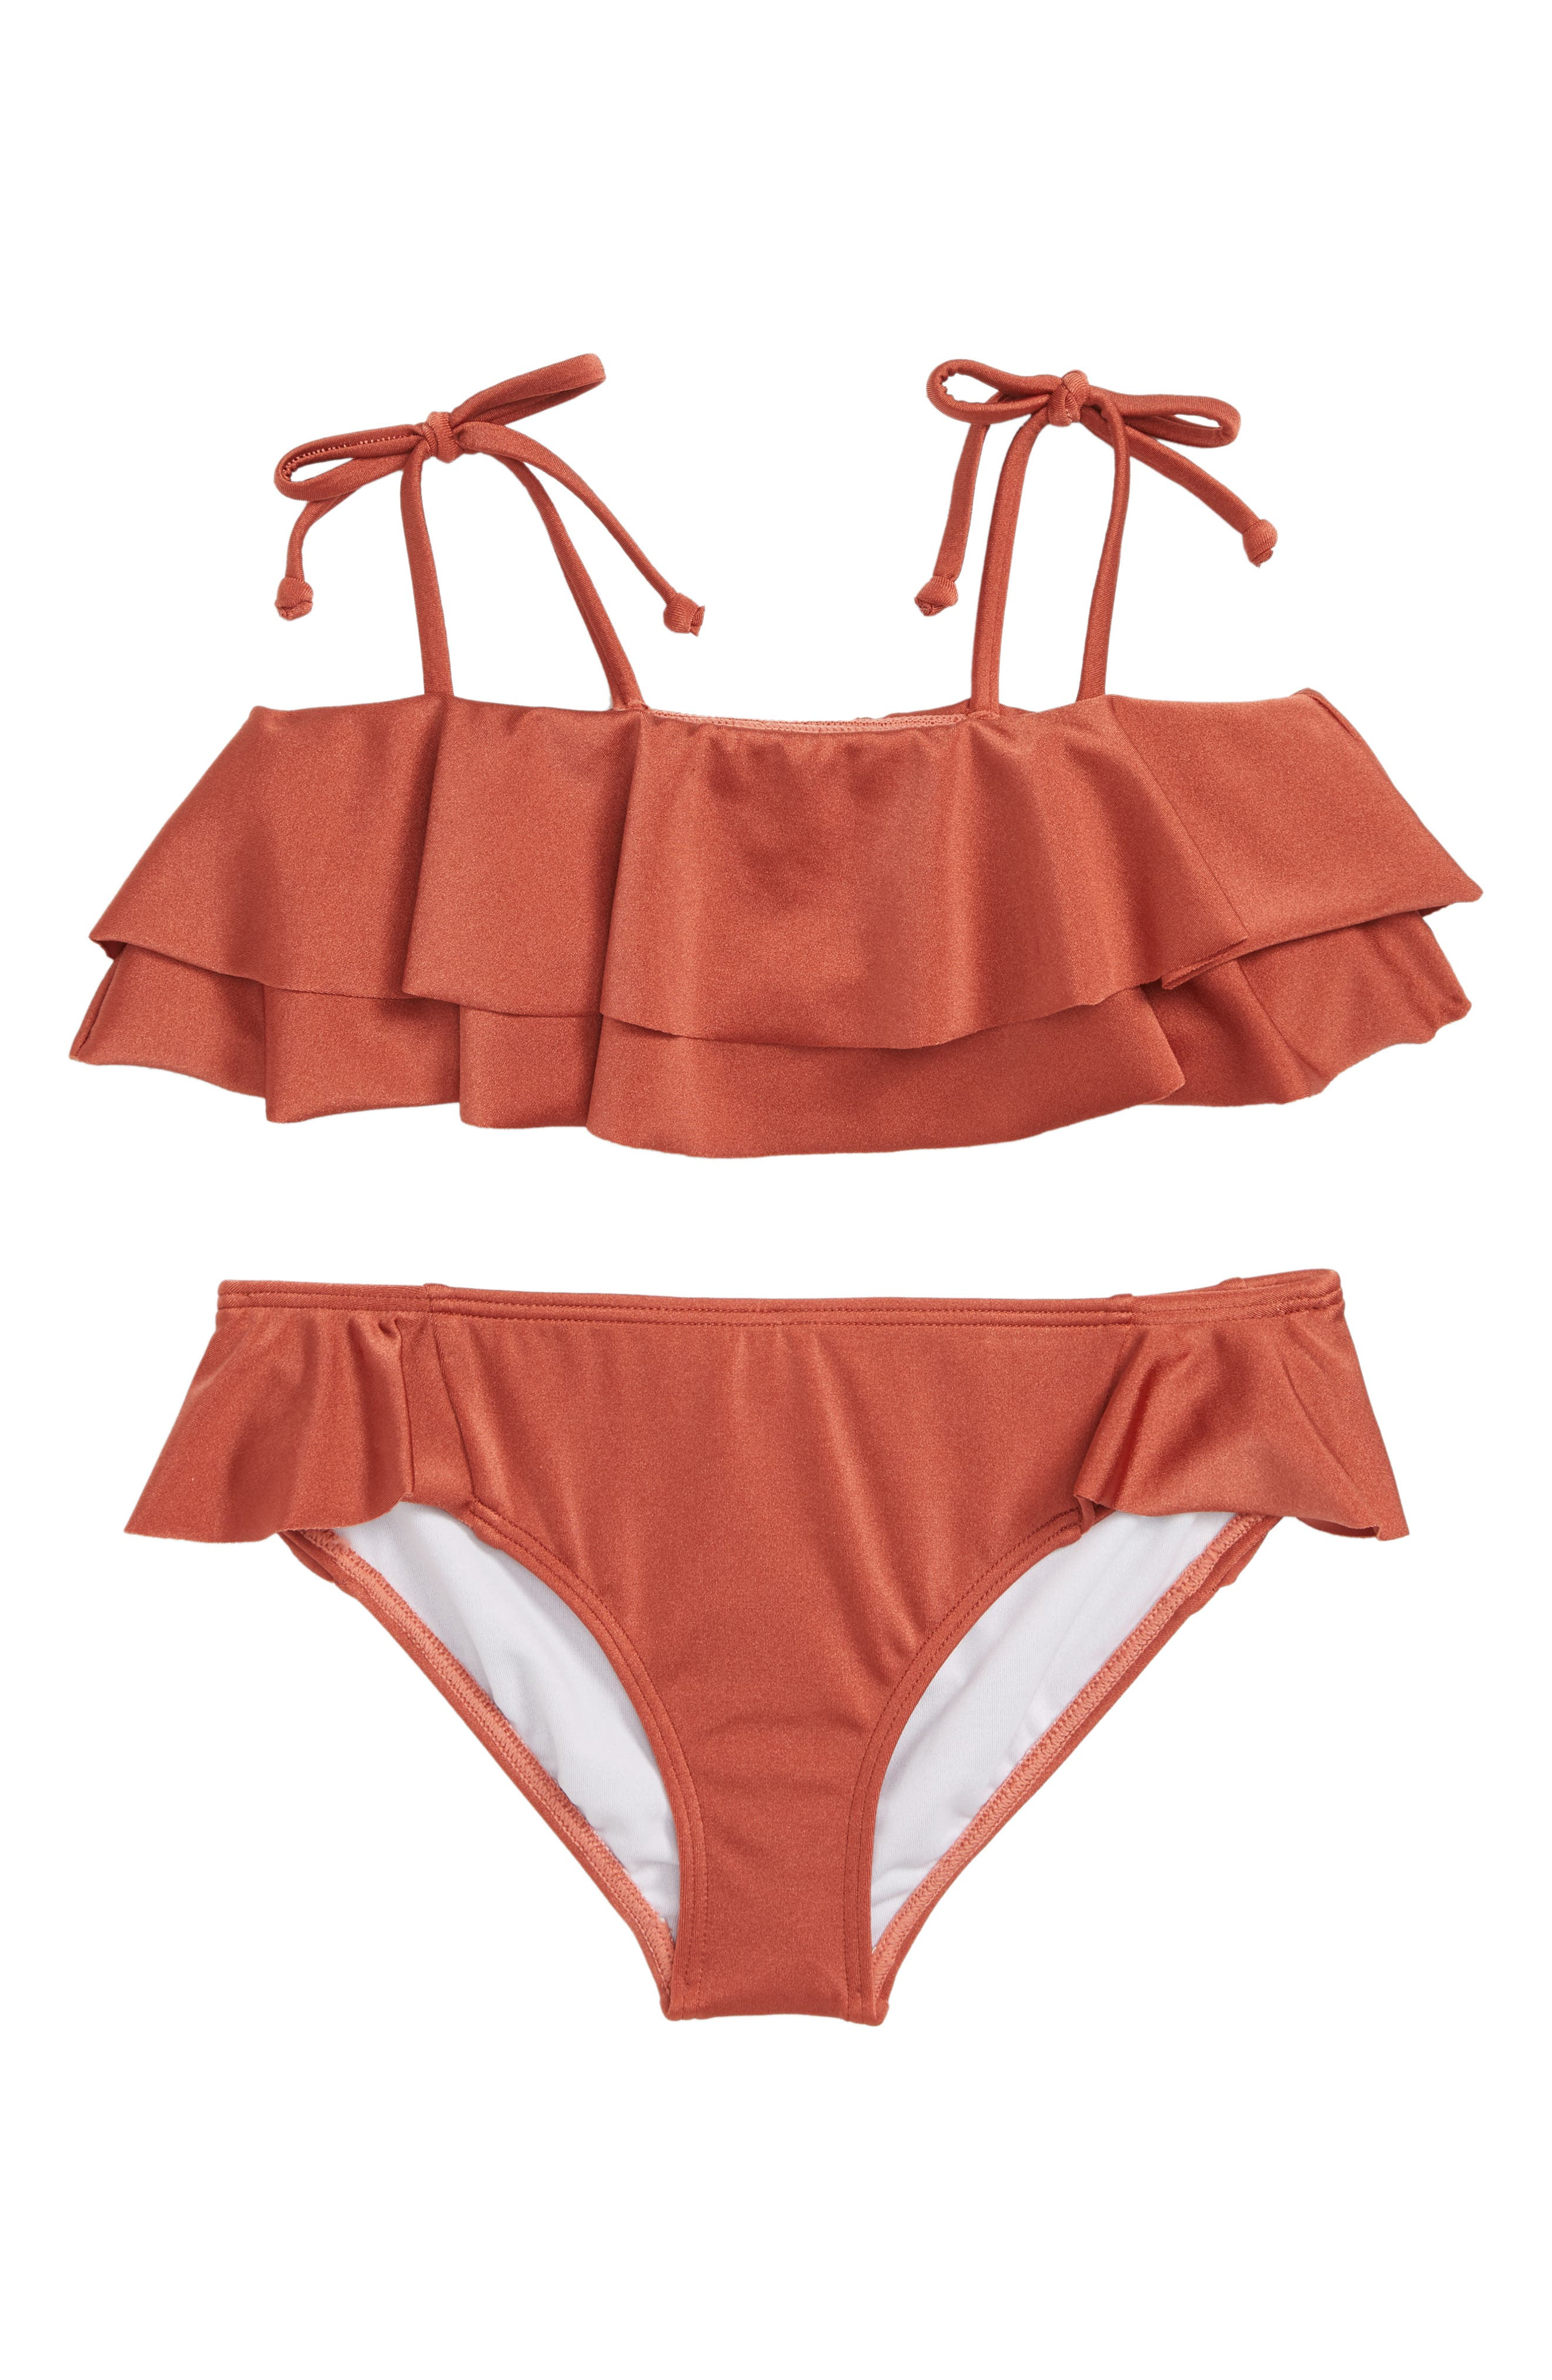 Shine Ruffle Two-Piece Swimsuit,                             Main thumbnail 1, color,                             SIENNA